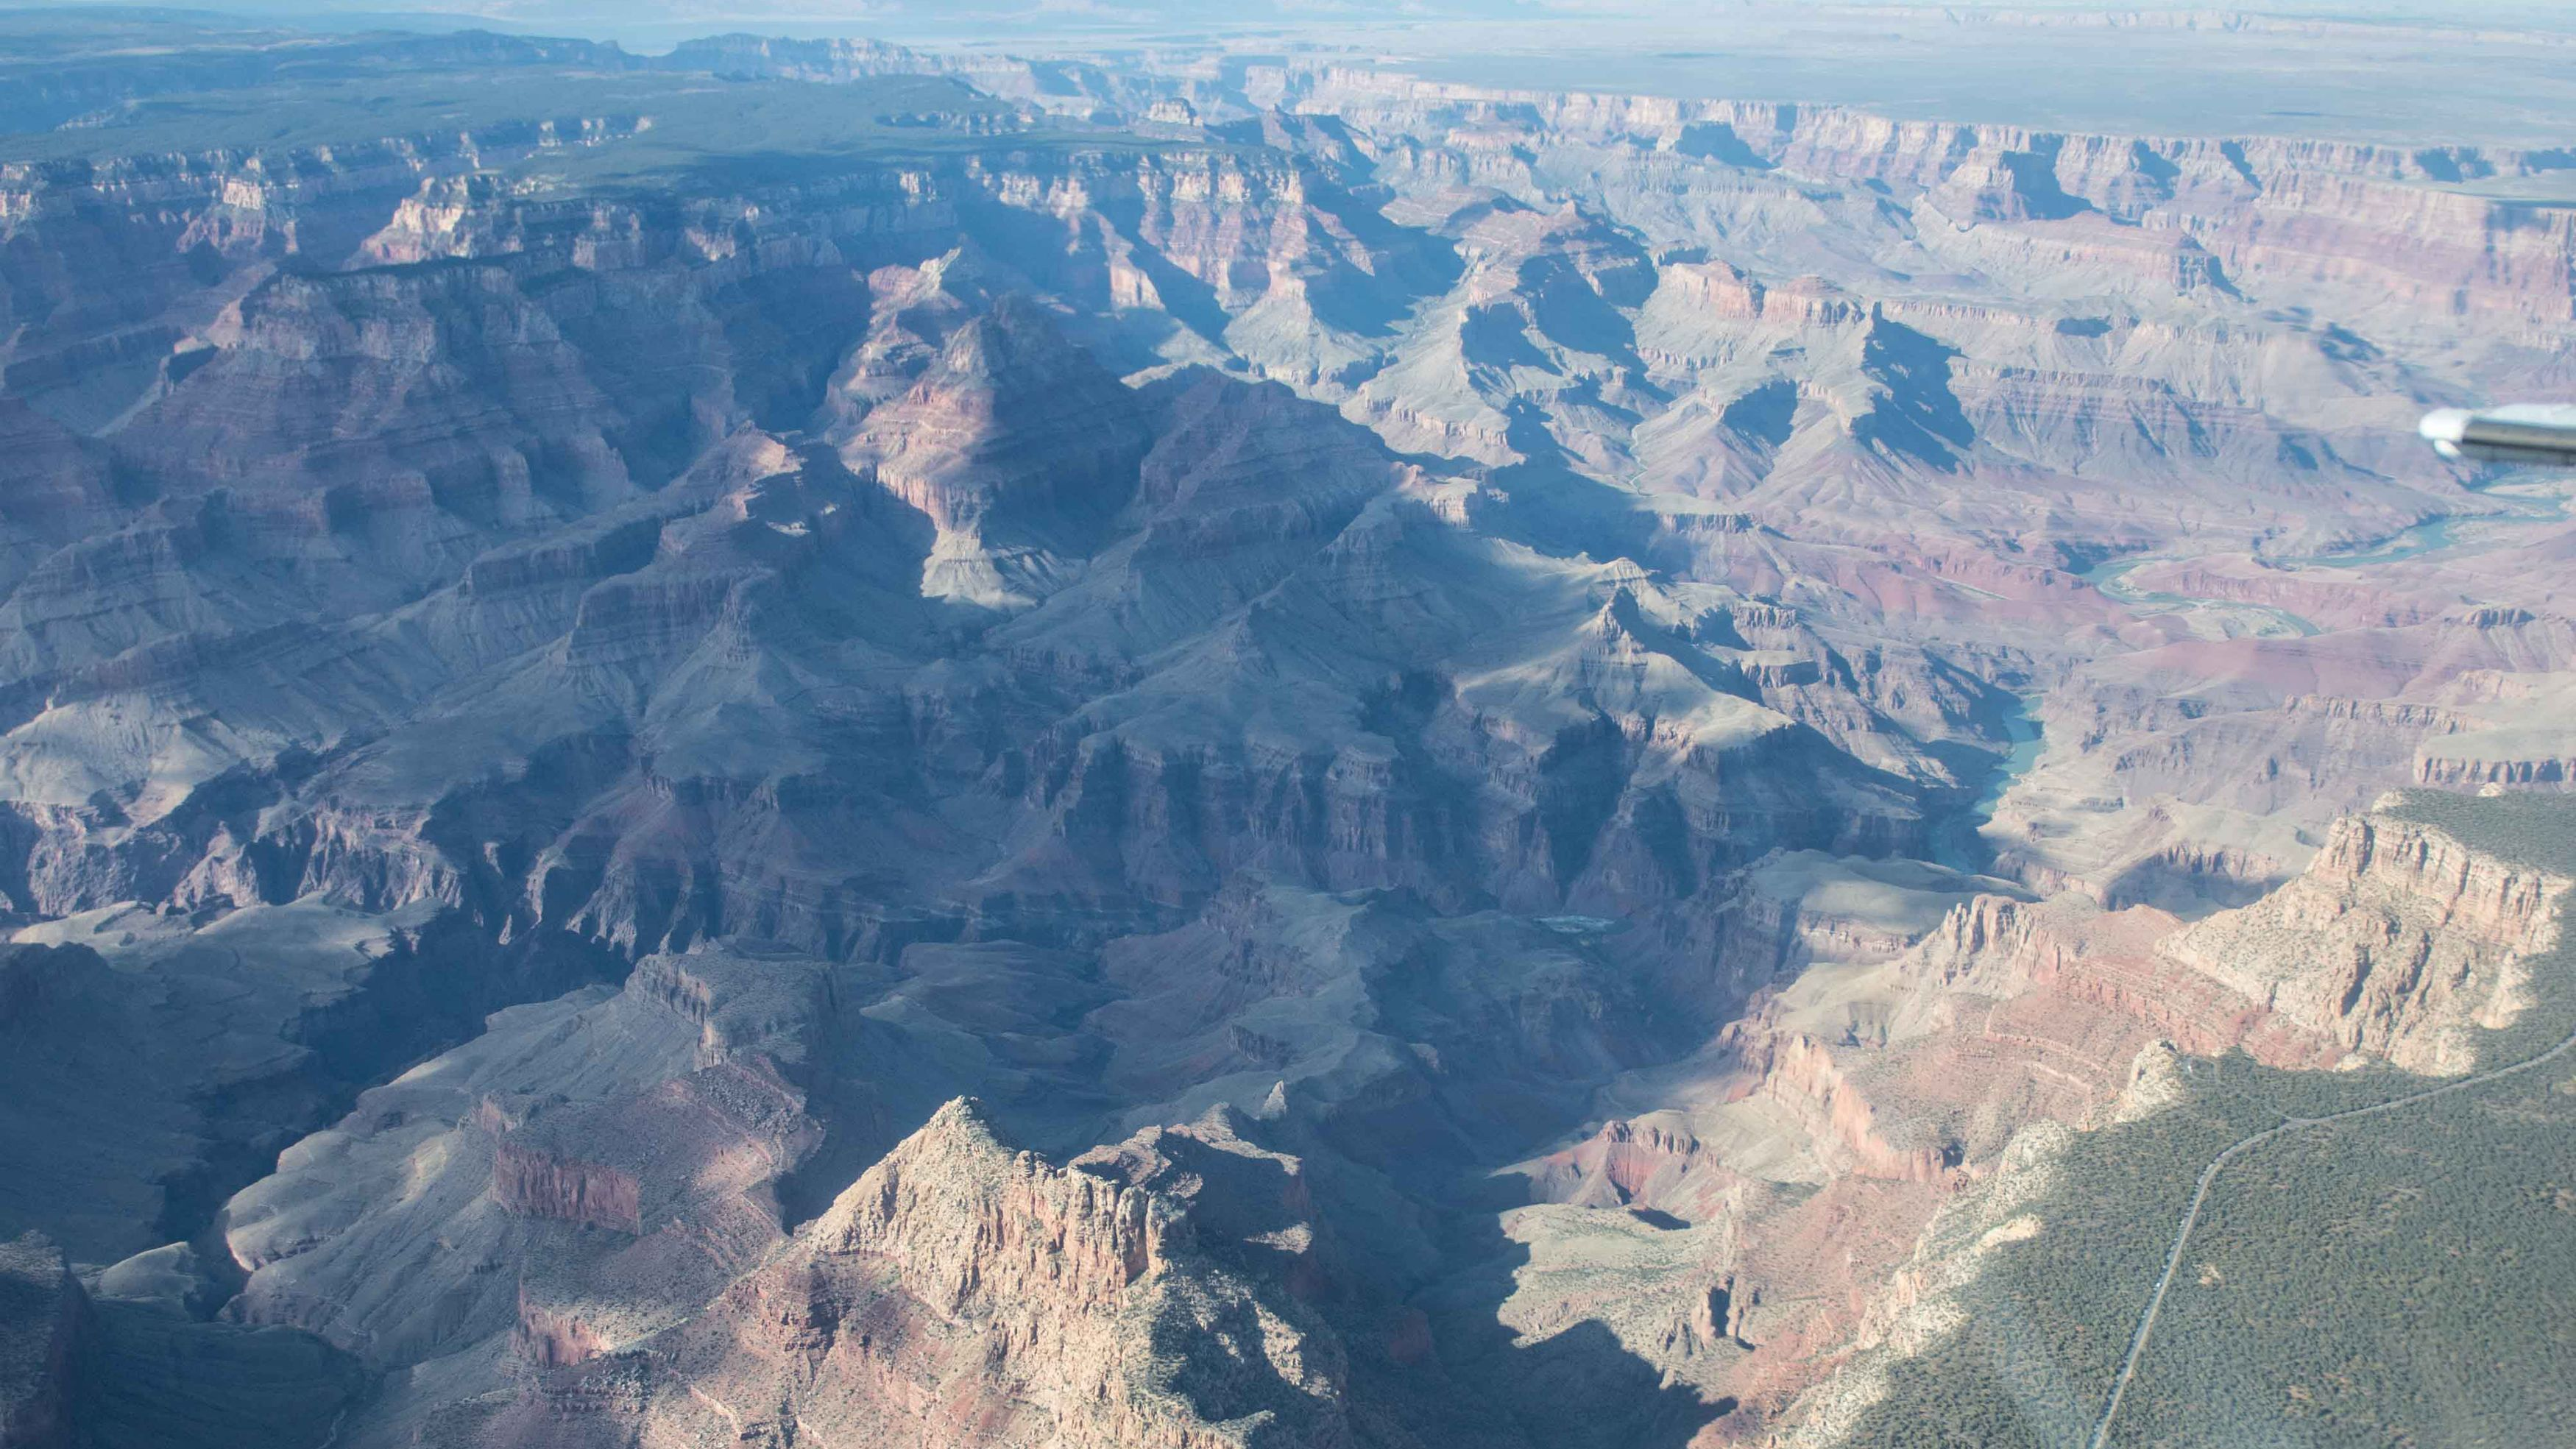 The Grand Canyon aerial view